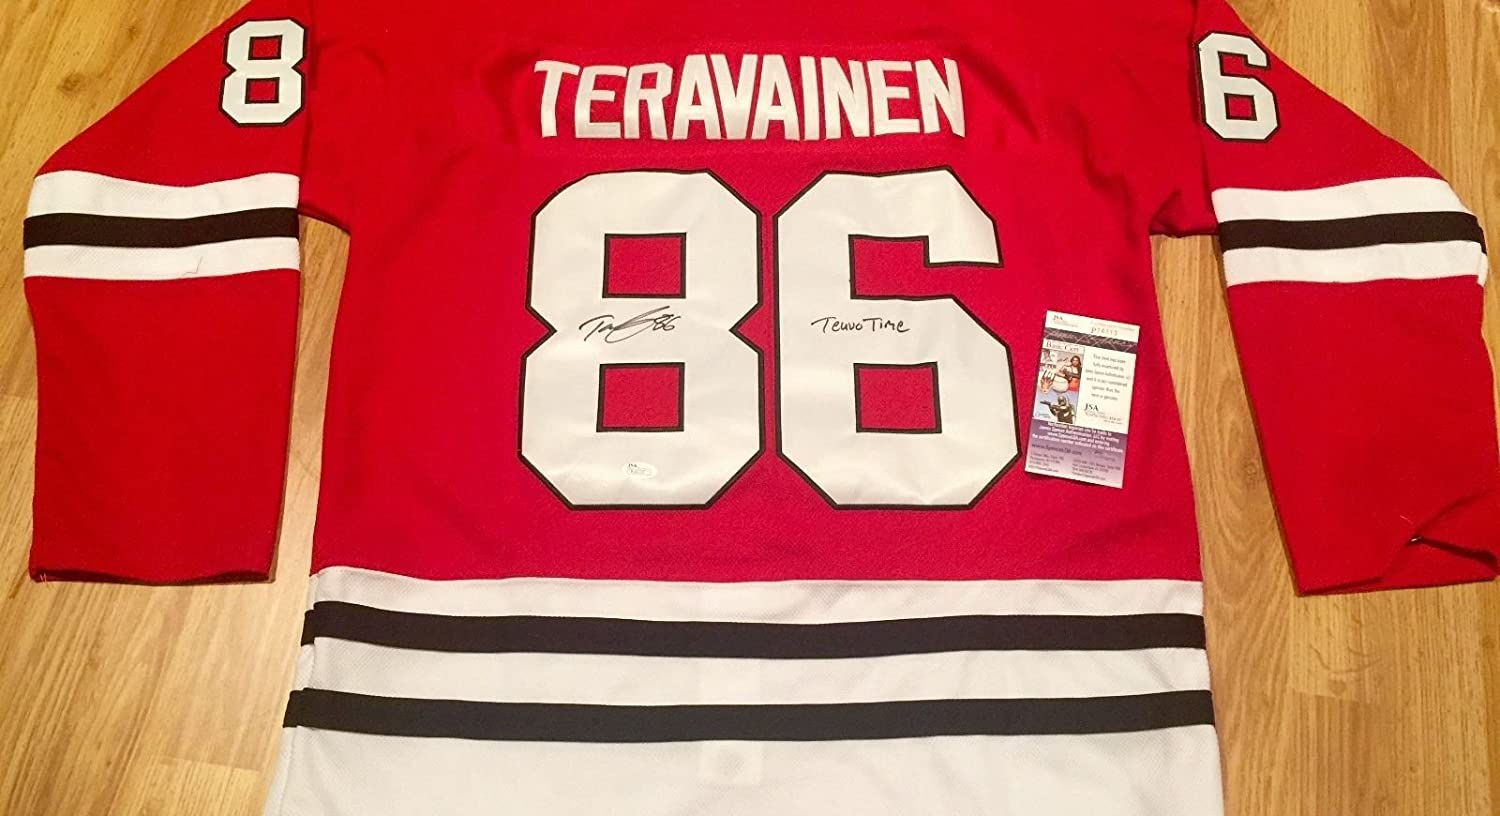 040dbd835 ... low price chicago blackhawks teuvo teravainen autographed signed jersey  psa coa photo proof teuvo time at ...